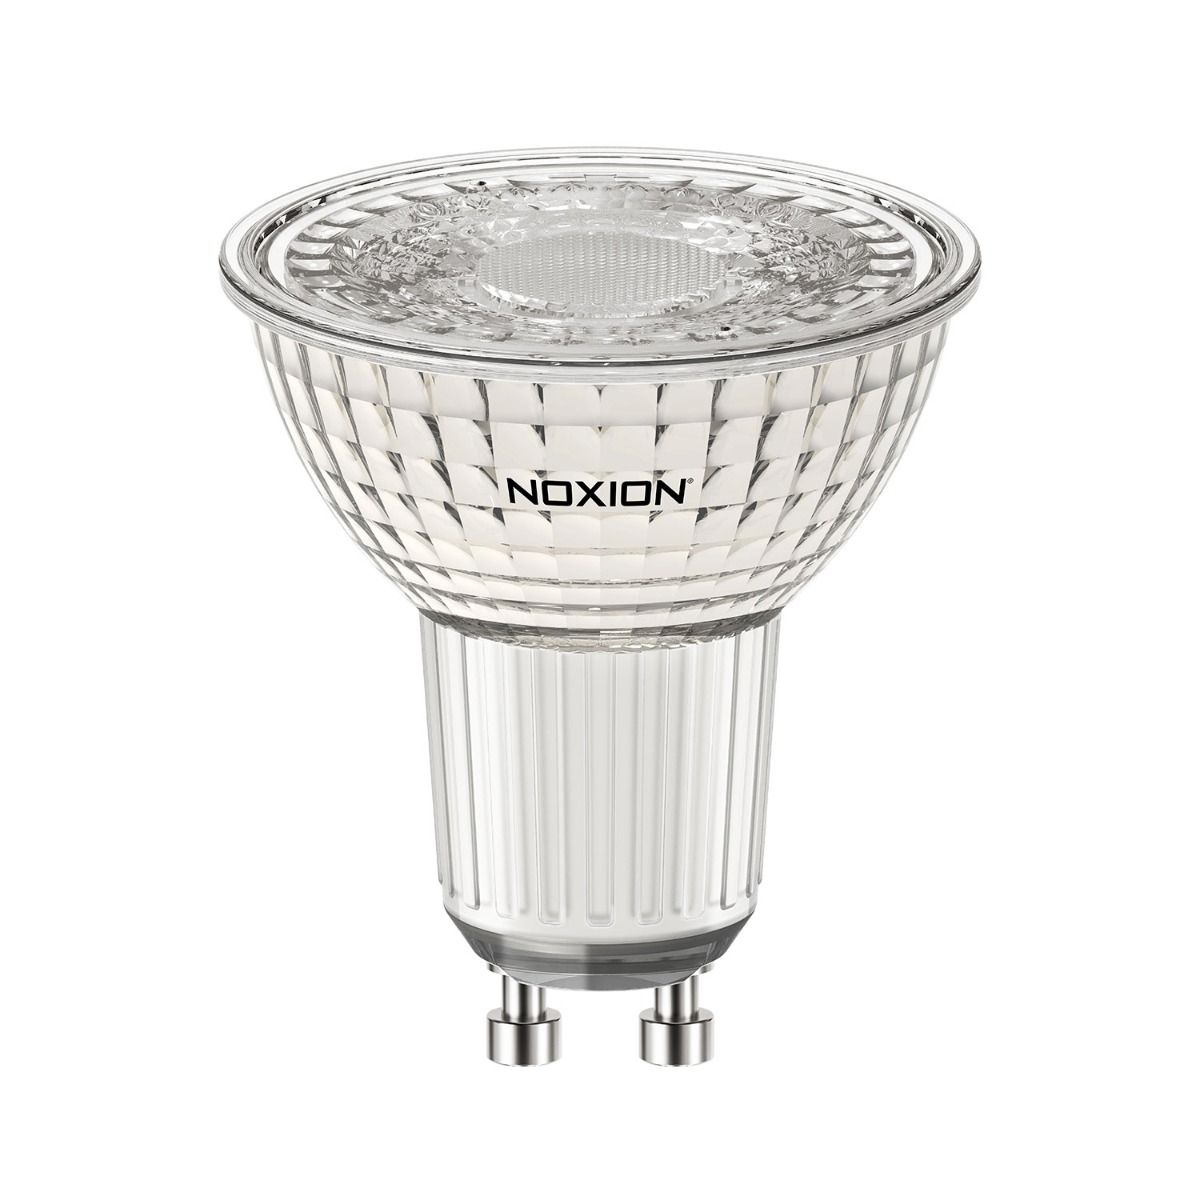 Noxion LED Spot PerfectColor GU10 5.5W 940 60D 480lm | Dimmable - Cool White - Replaces 50W